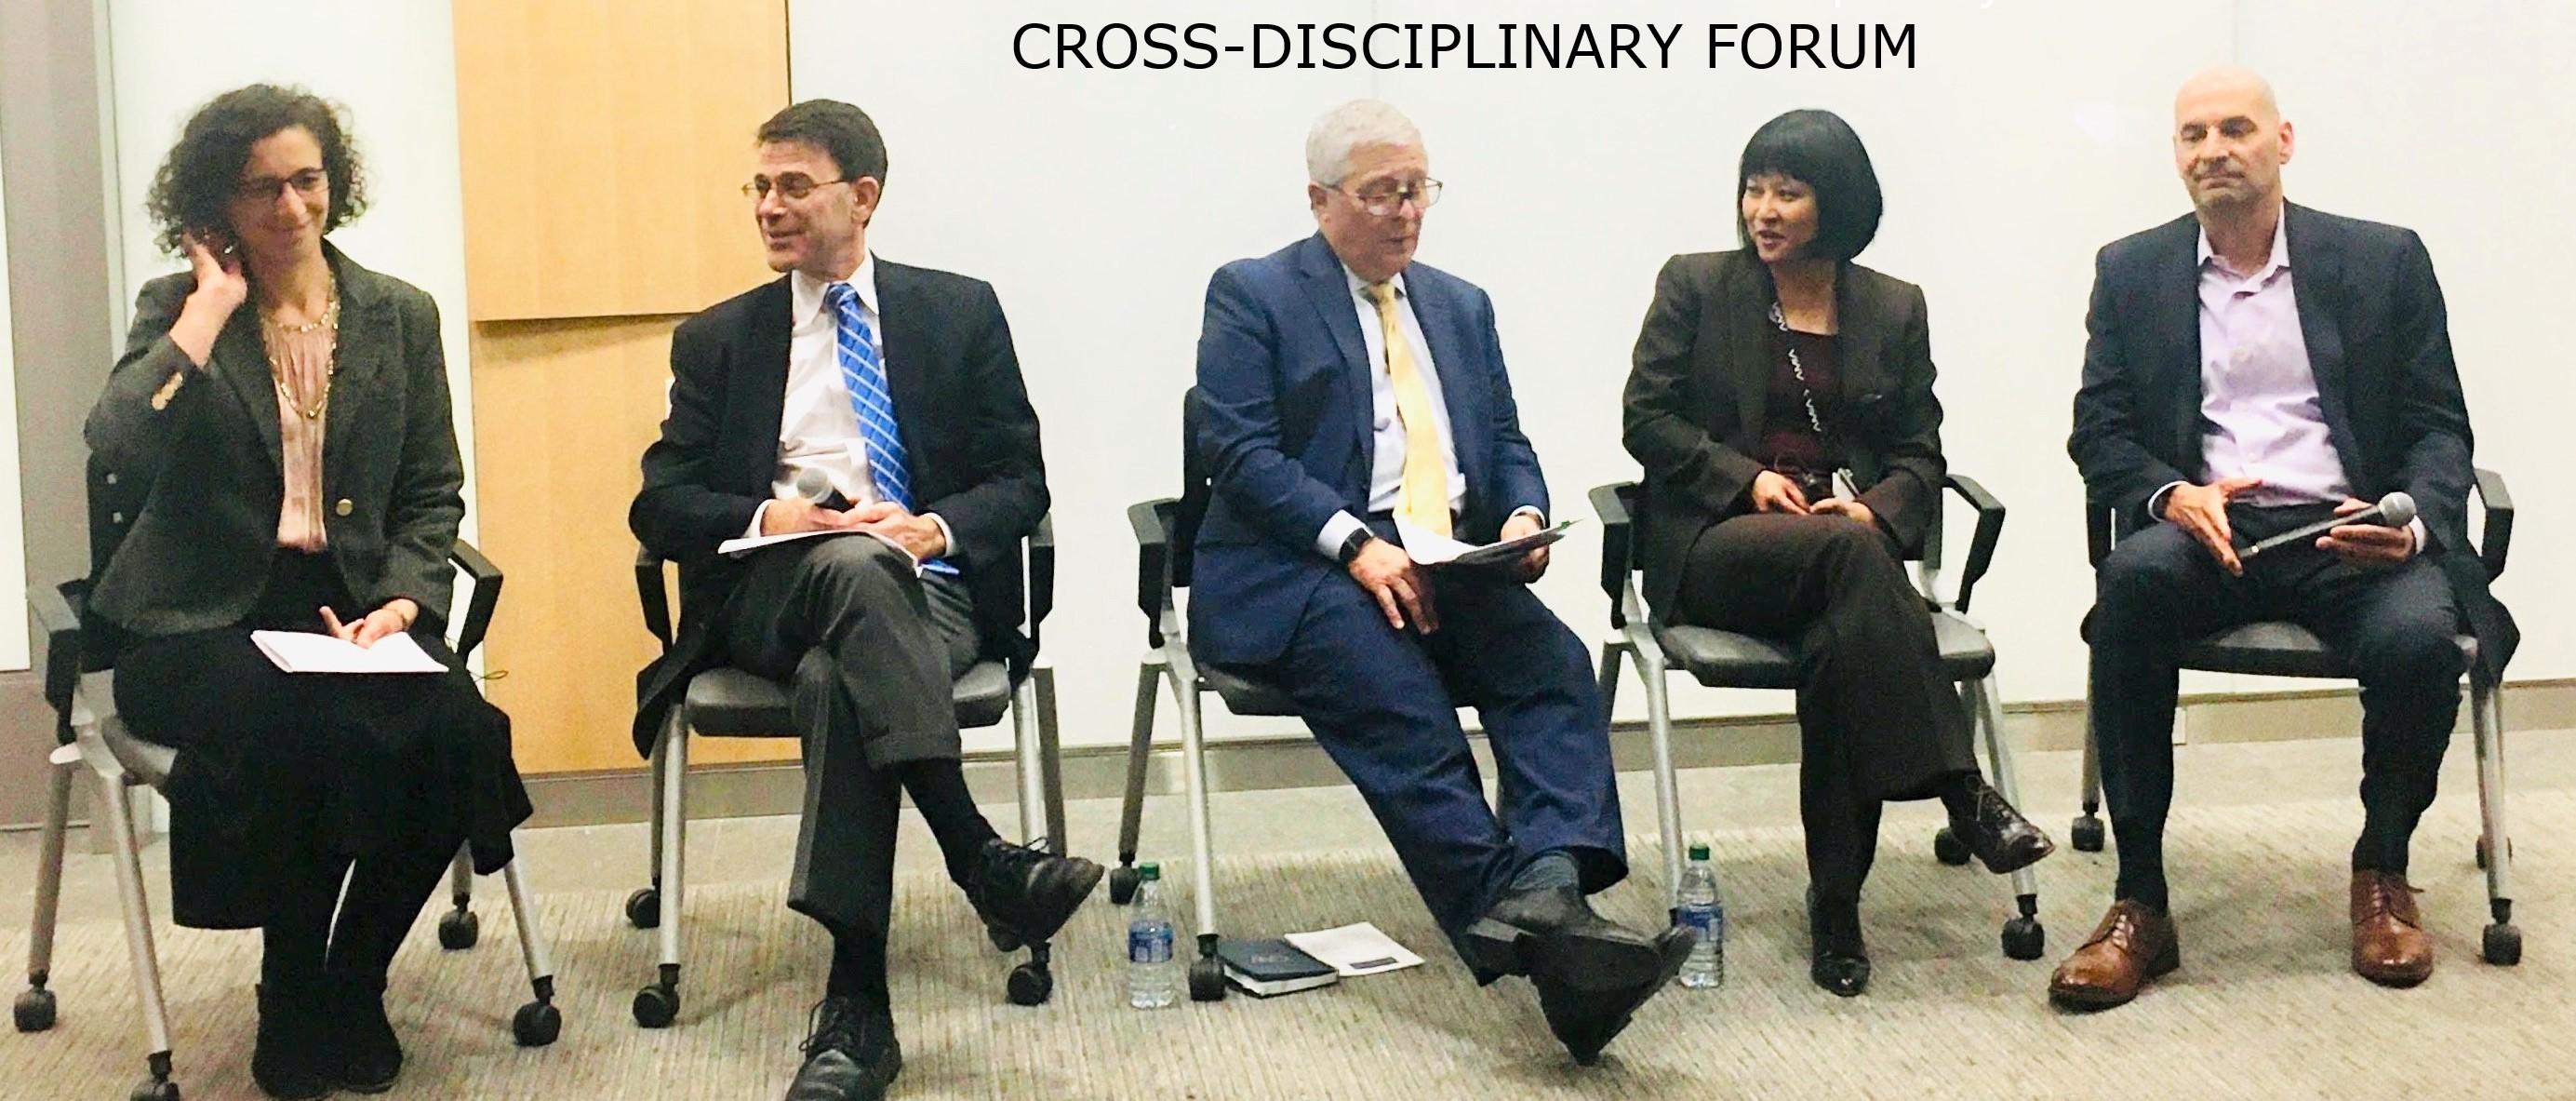 Cross-Disciplinary Forum Panelists